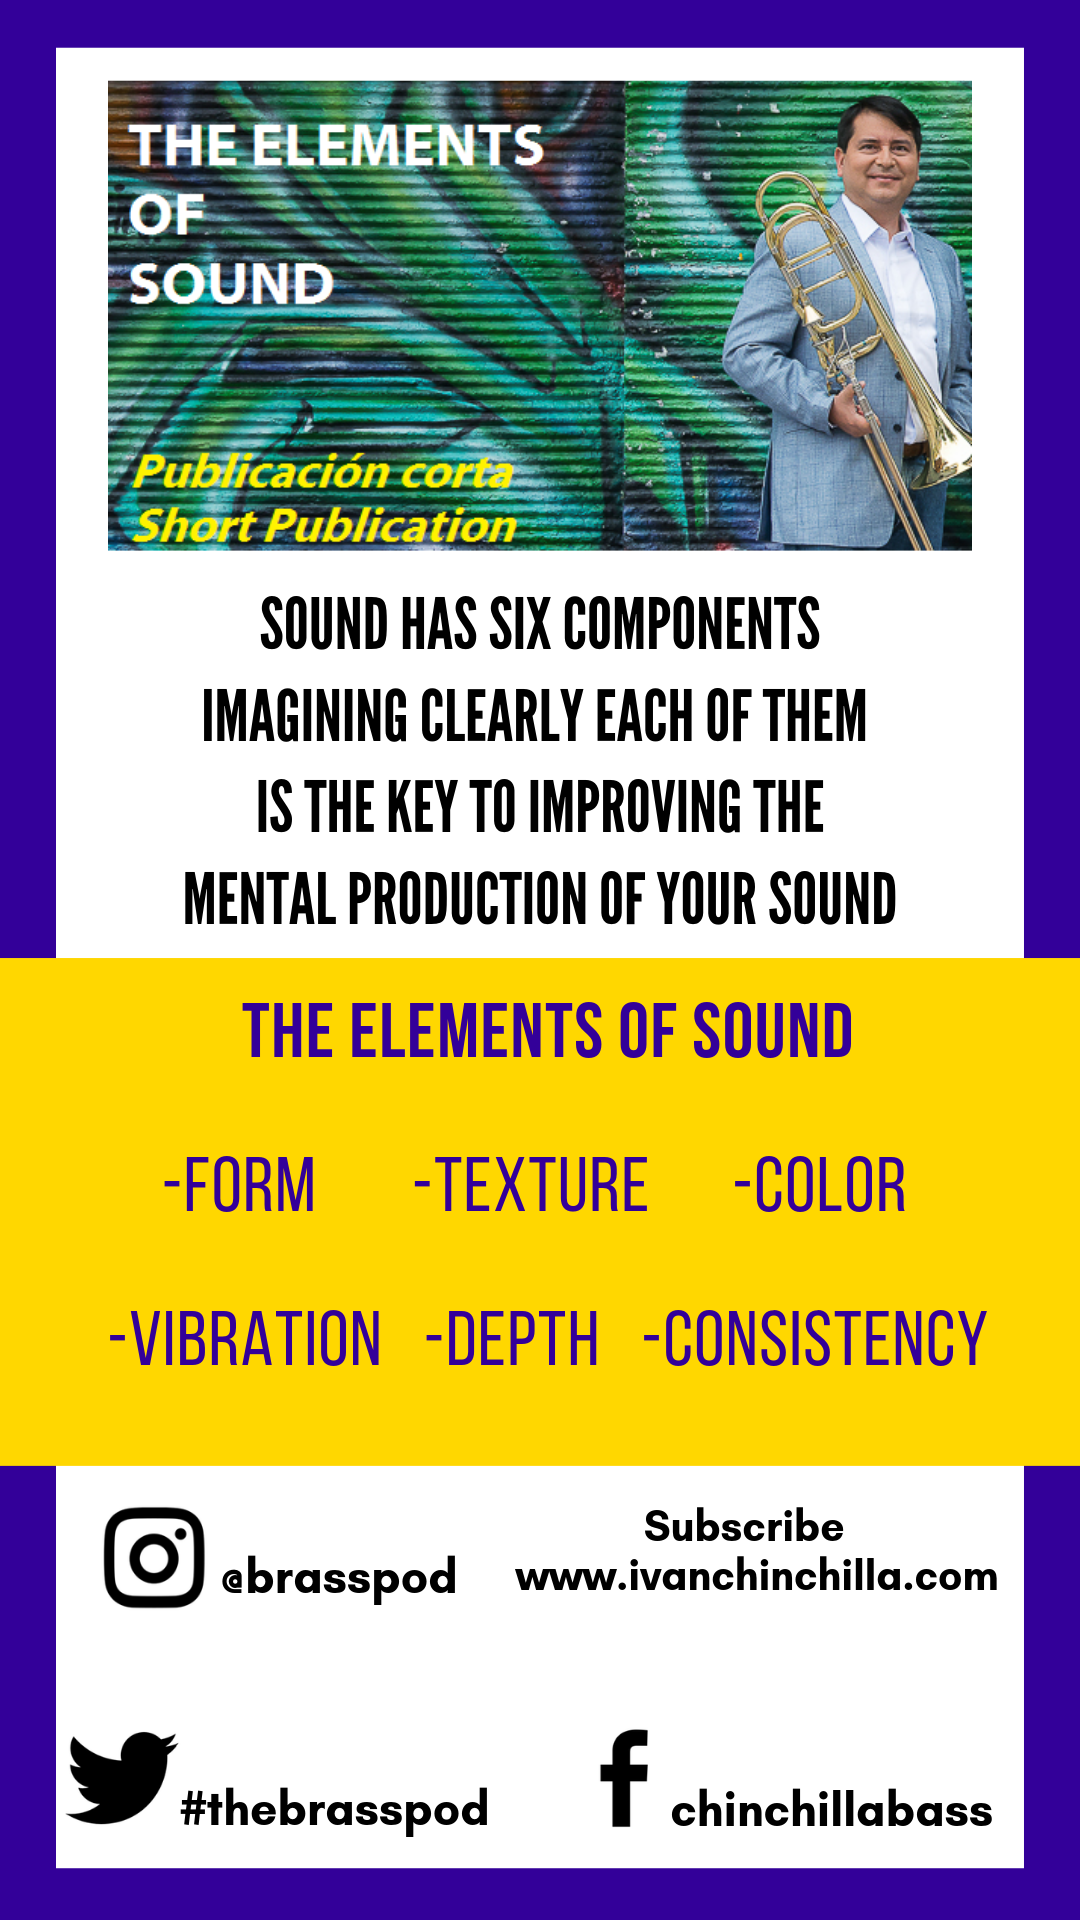 THE ELEMENTS OF SOUND